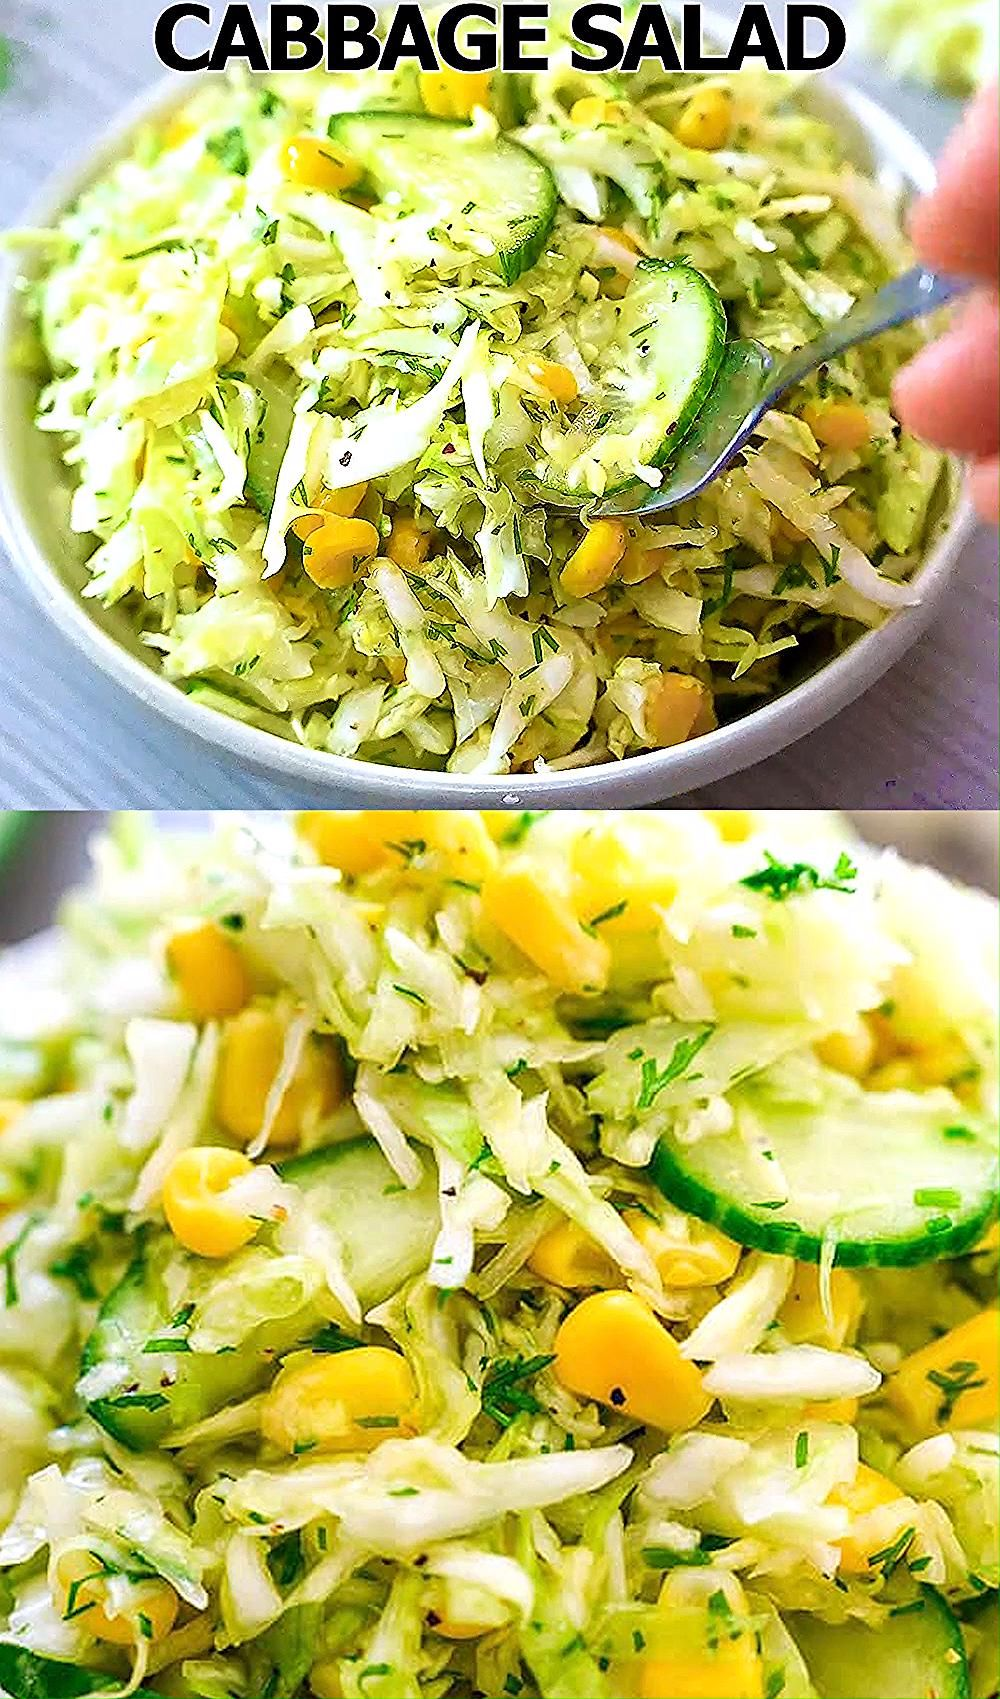 This Cabbage Salad with Corn is made with only a few ingredients and it tastes fantastic! It makes the perfect side dish for almost any kind of meal. FOLLOW Cooktoria for more deliciousness! #cabbage #corn #cucumber #salad #vegan #plantbased #vegetarian #lunch #recipeoftheday